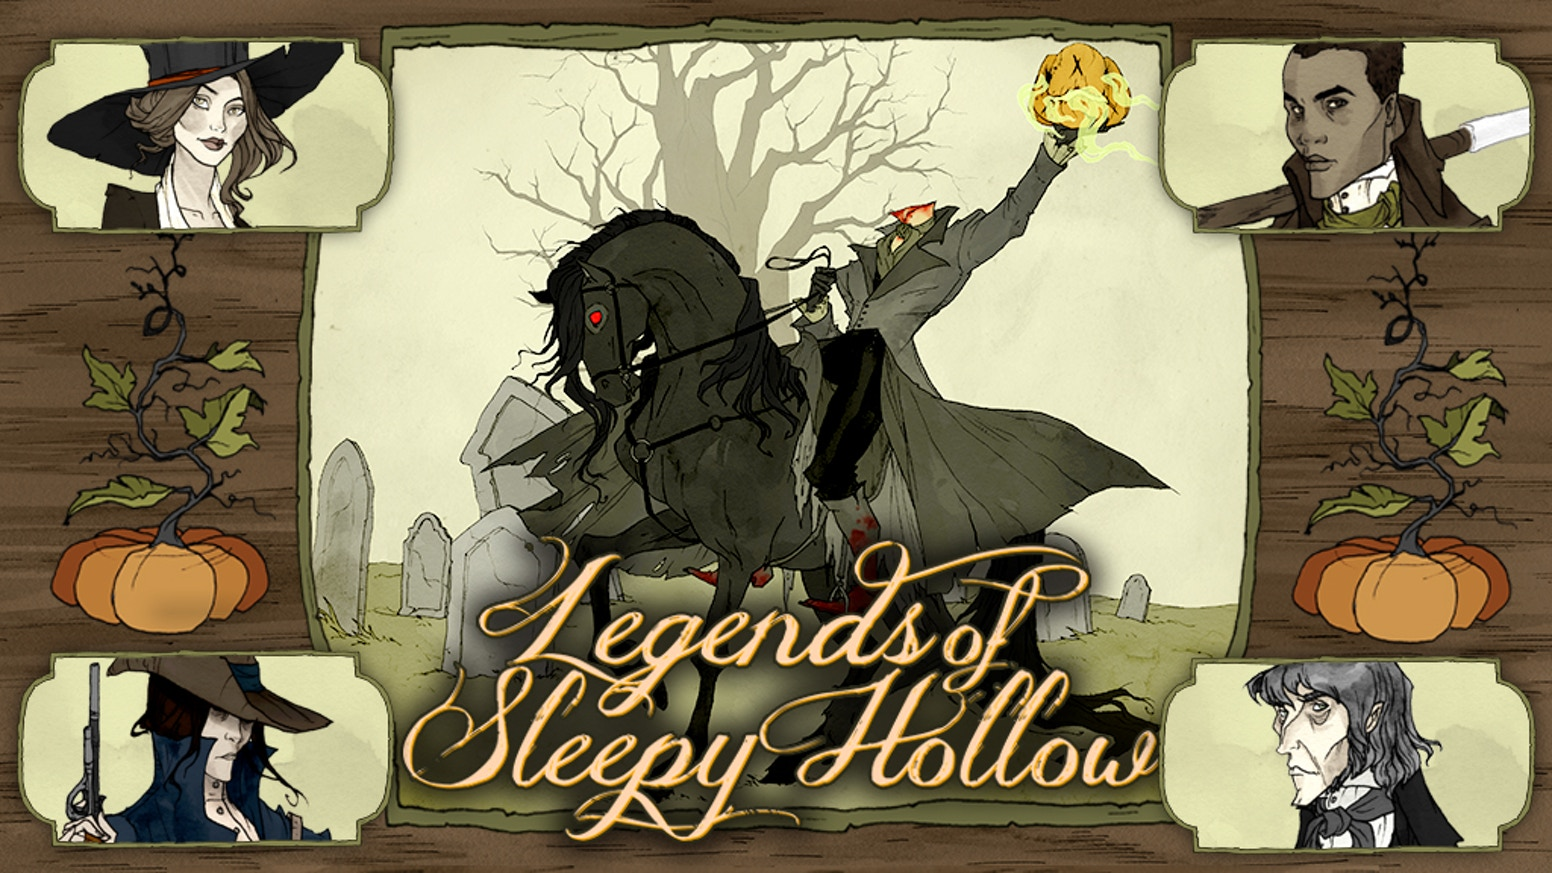 Find Ichabod Crane in this scenario-based cooperative game for 1 to 4 players set three days after Washington Irving's classic tale.